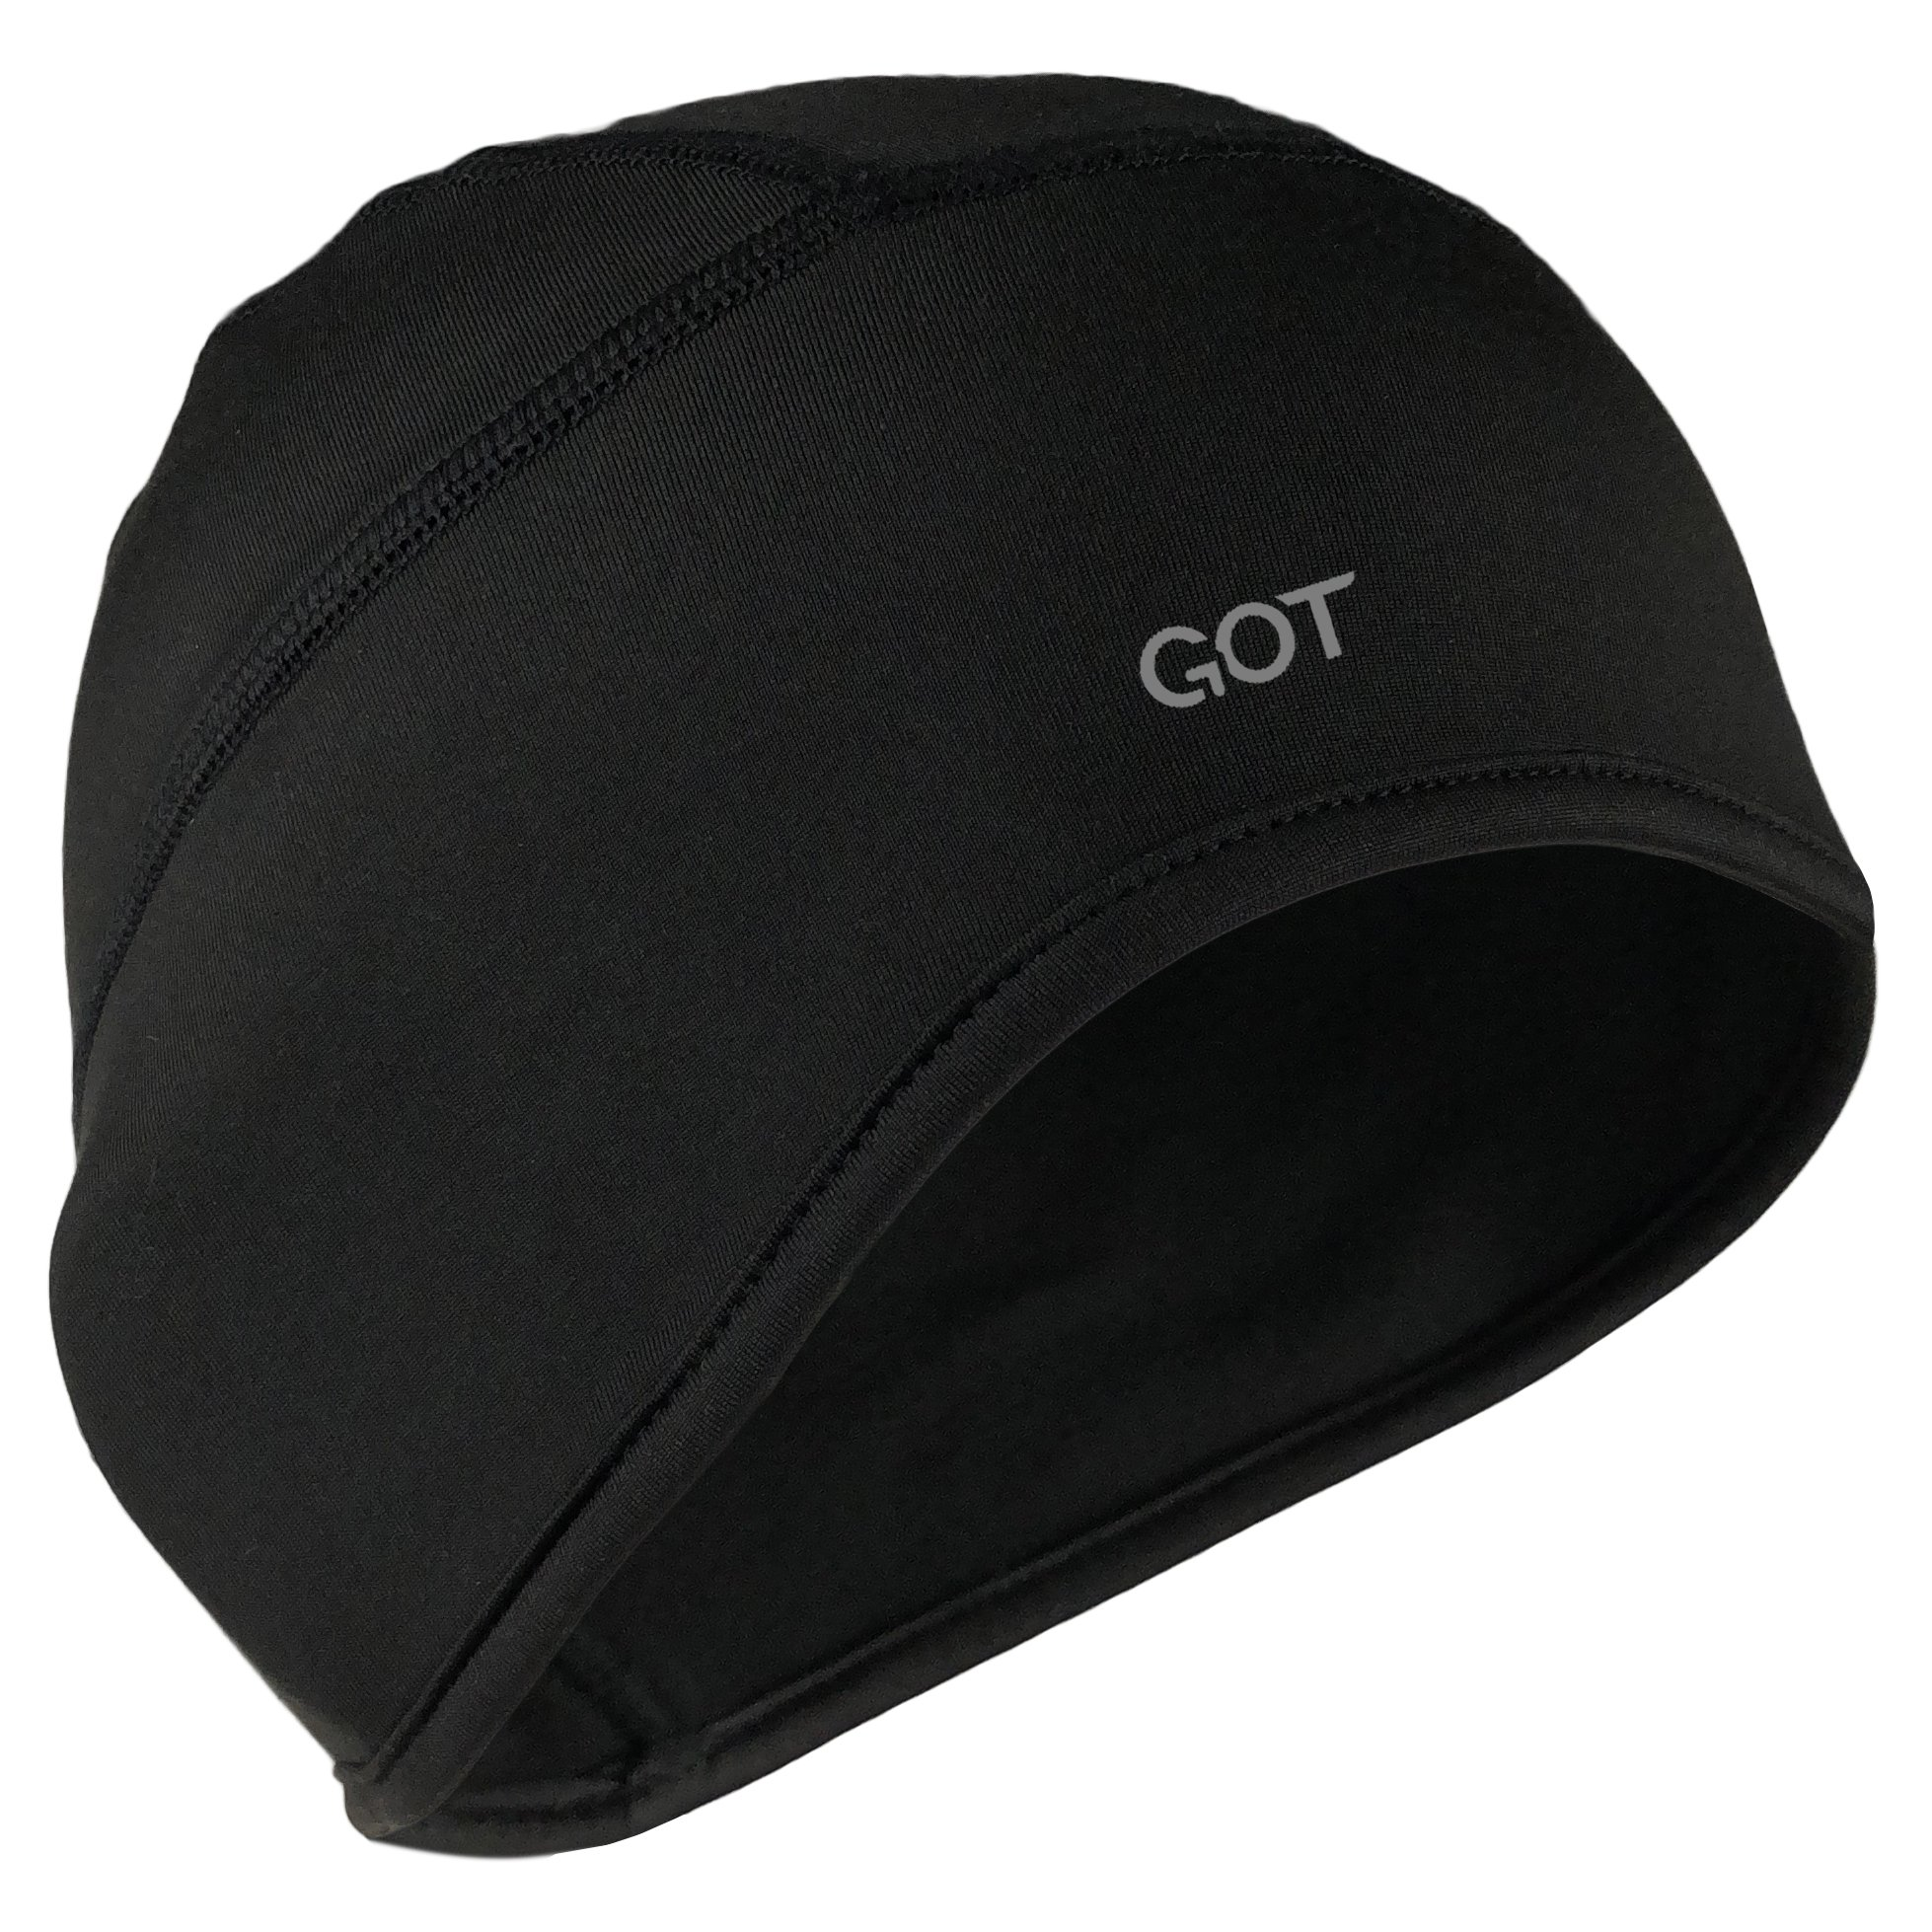 GOT Sports Skull Cap/Helmet Liner/Beanie for Running, Cycling, Motorcycle Riding, Skiing. Thermal Retention and Moisture Wicking Technology by GOT Sports (Image #5)